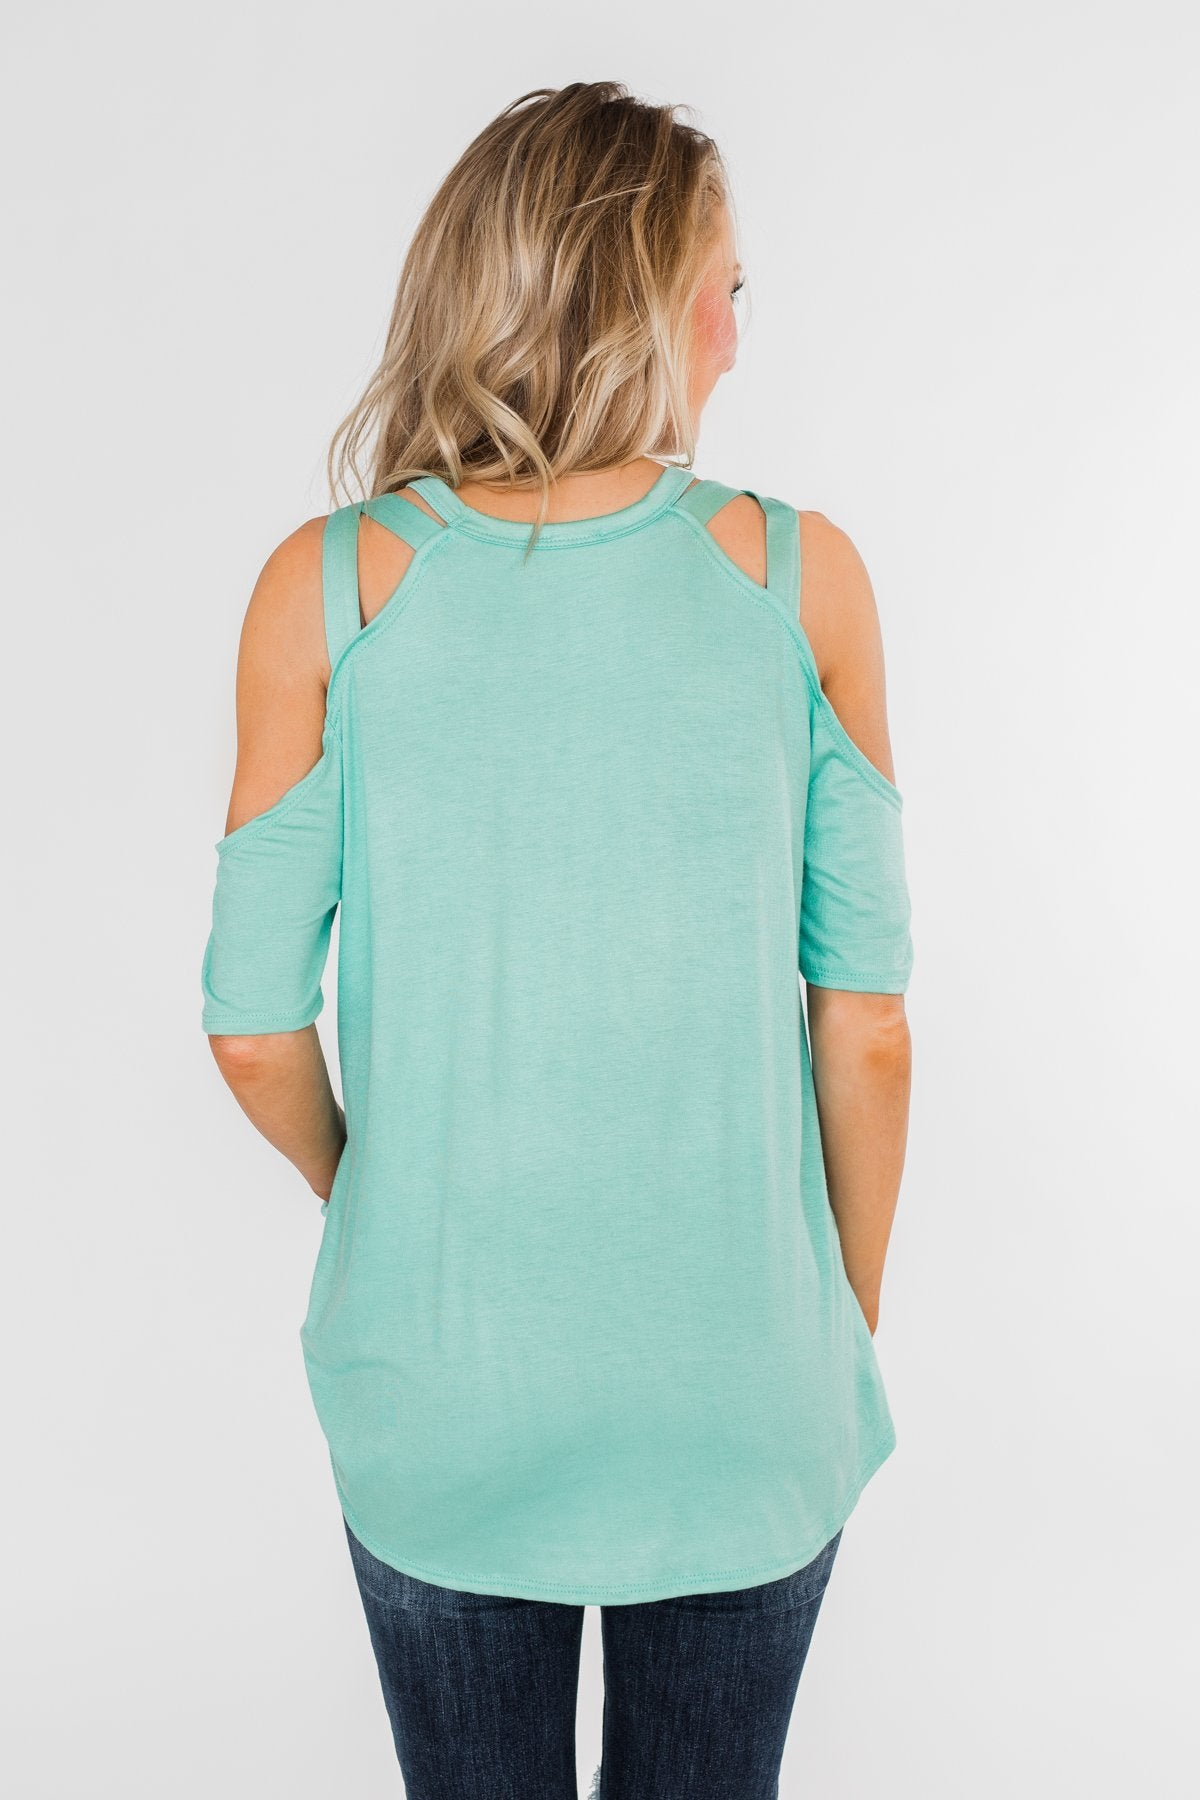 Feeling Alive Cold Shoulder Top- Aqua